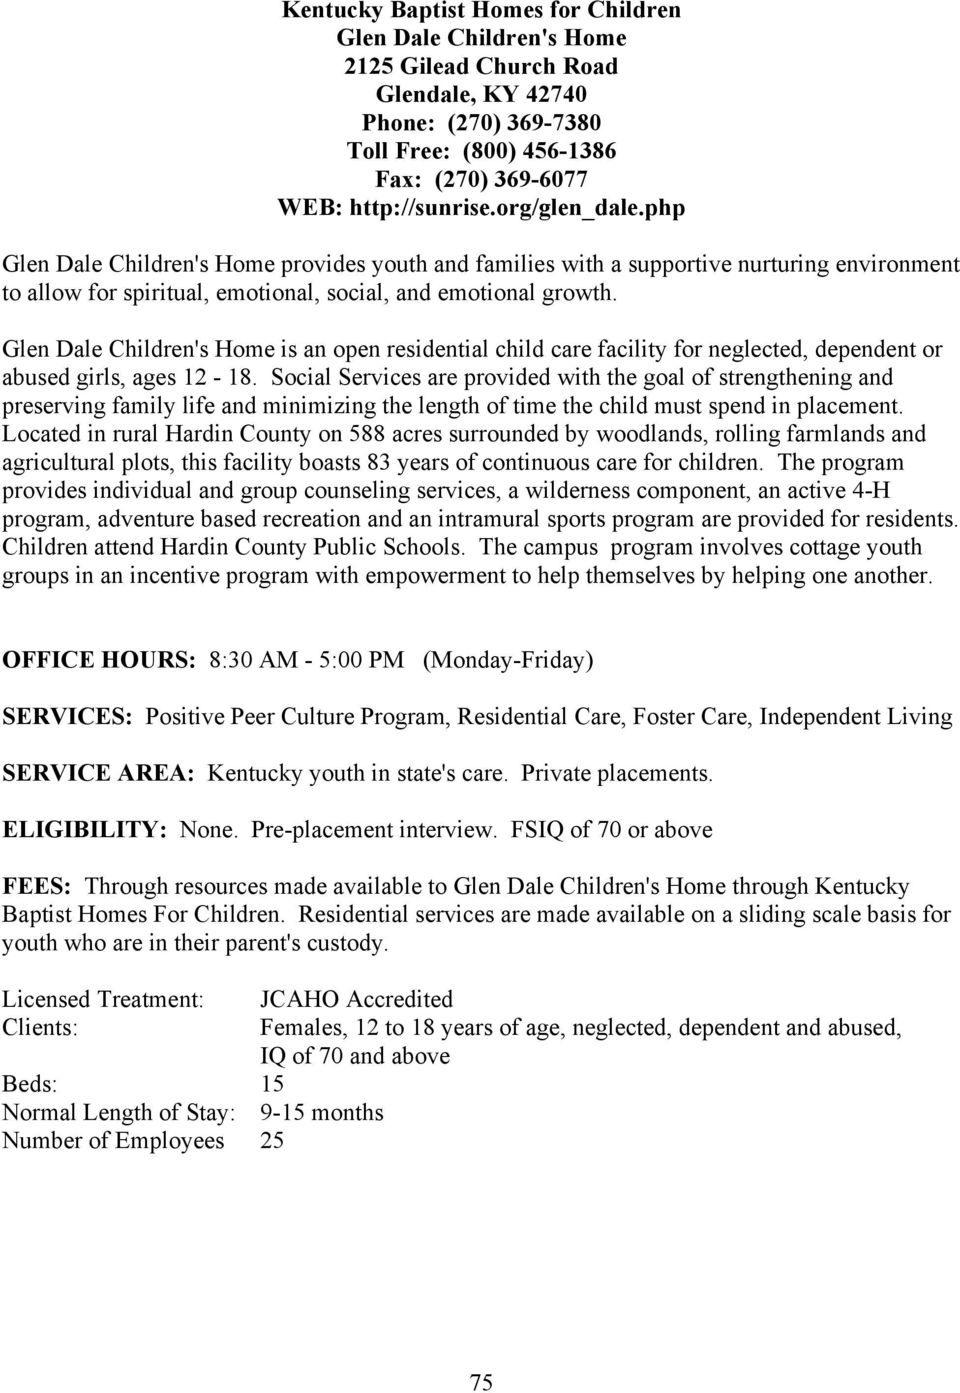 Glen Dale Children's Home is an open residential child care facility for neglected, dependent or abused girls, ages 12-18.